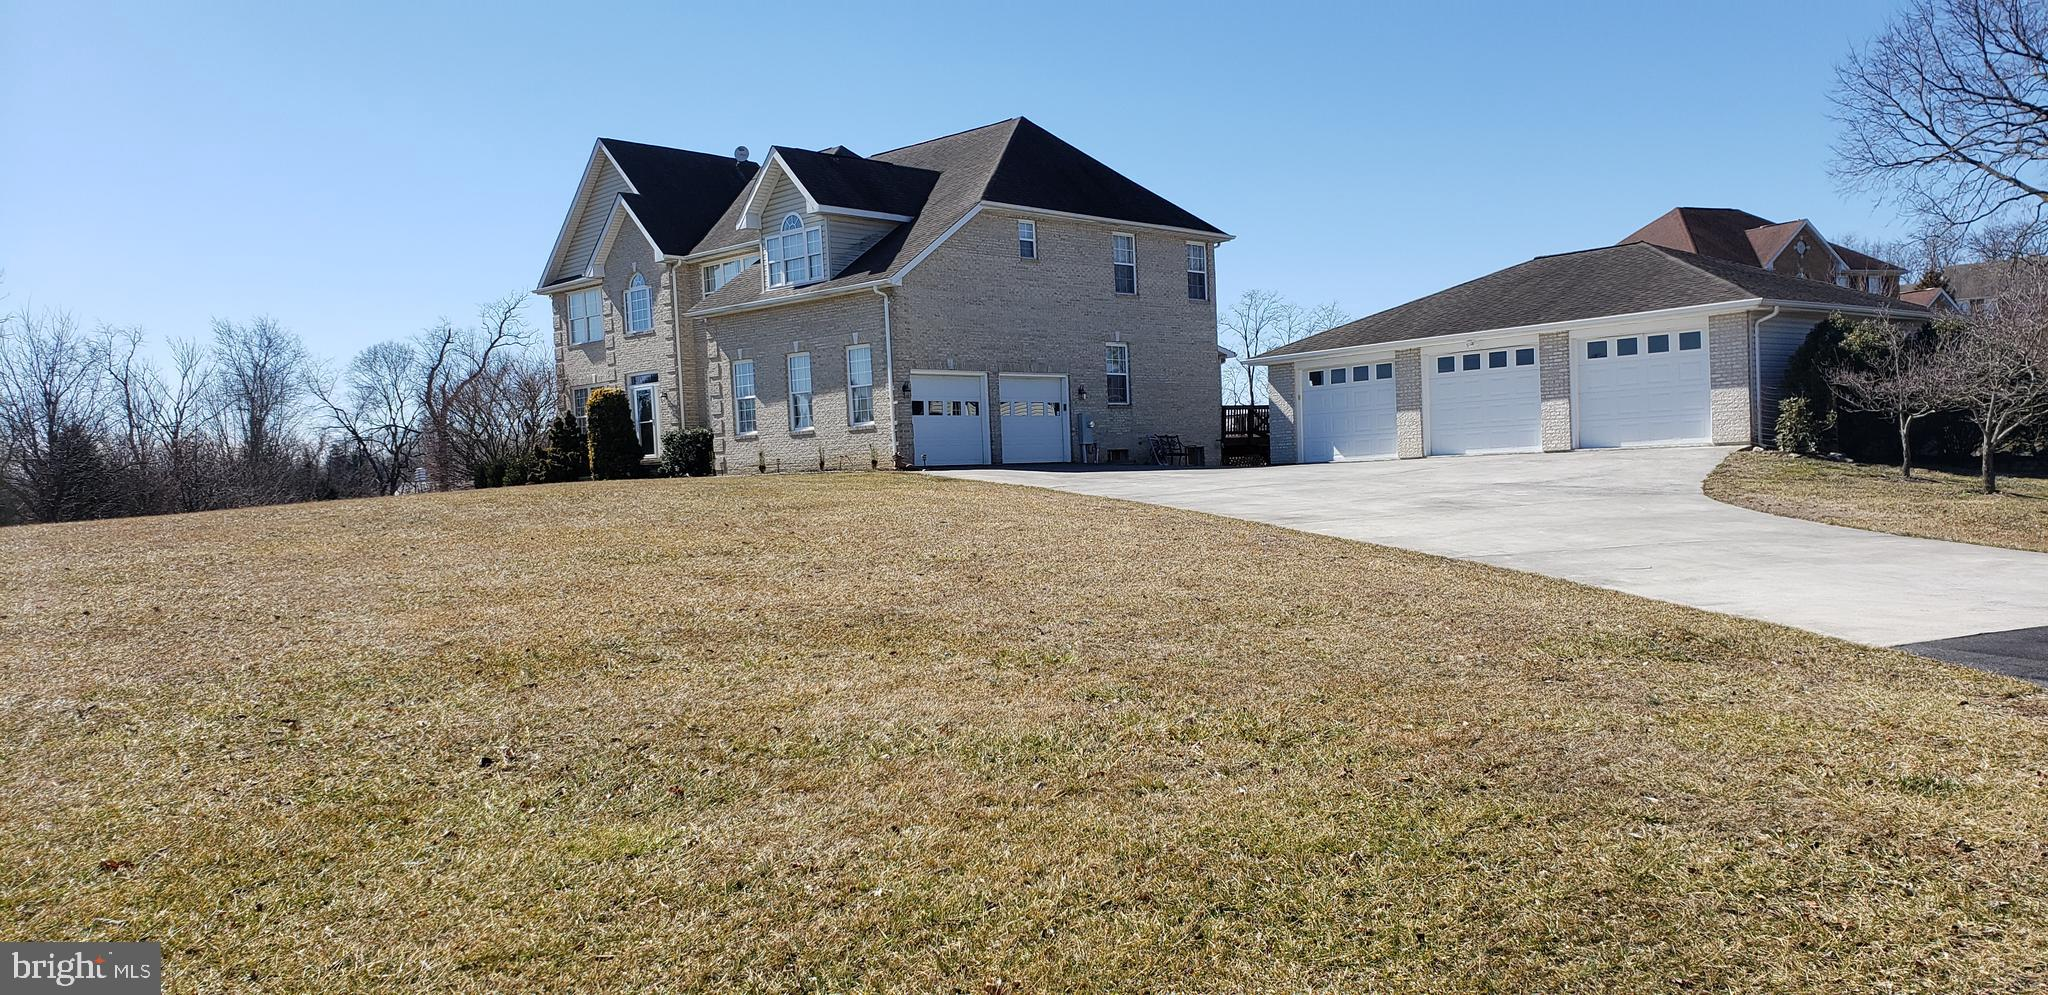 Stately Brick /Stone 3 Level Colonial on 2+ acres*Over 6,000 SQ FT* This Lovely Home Offers 2 Story